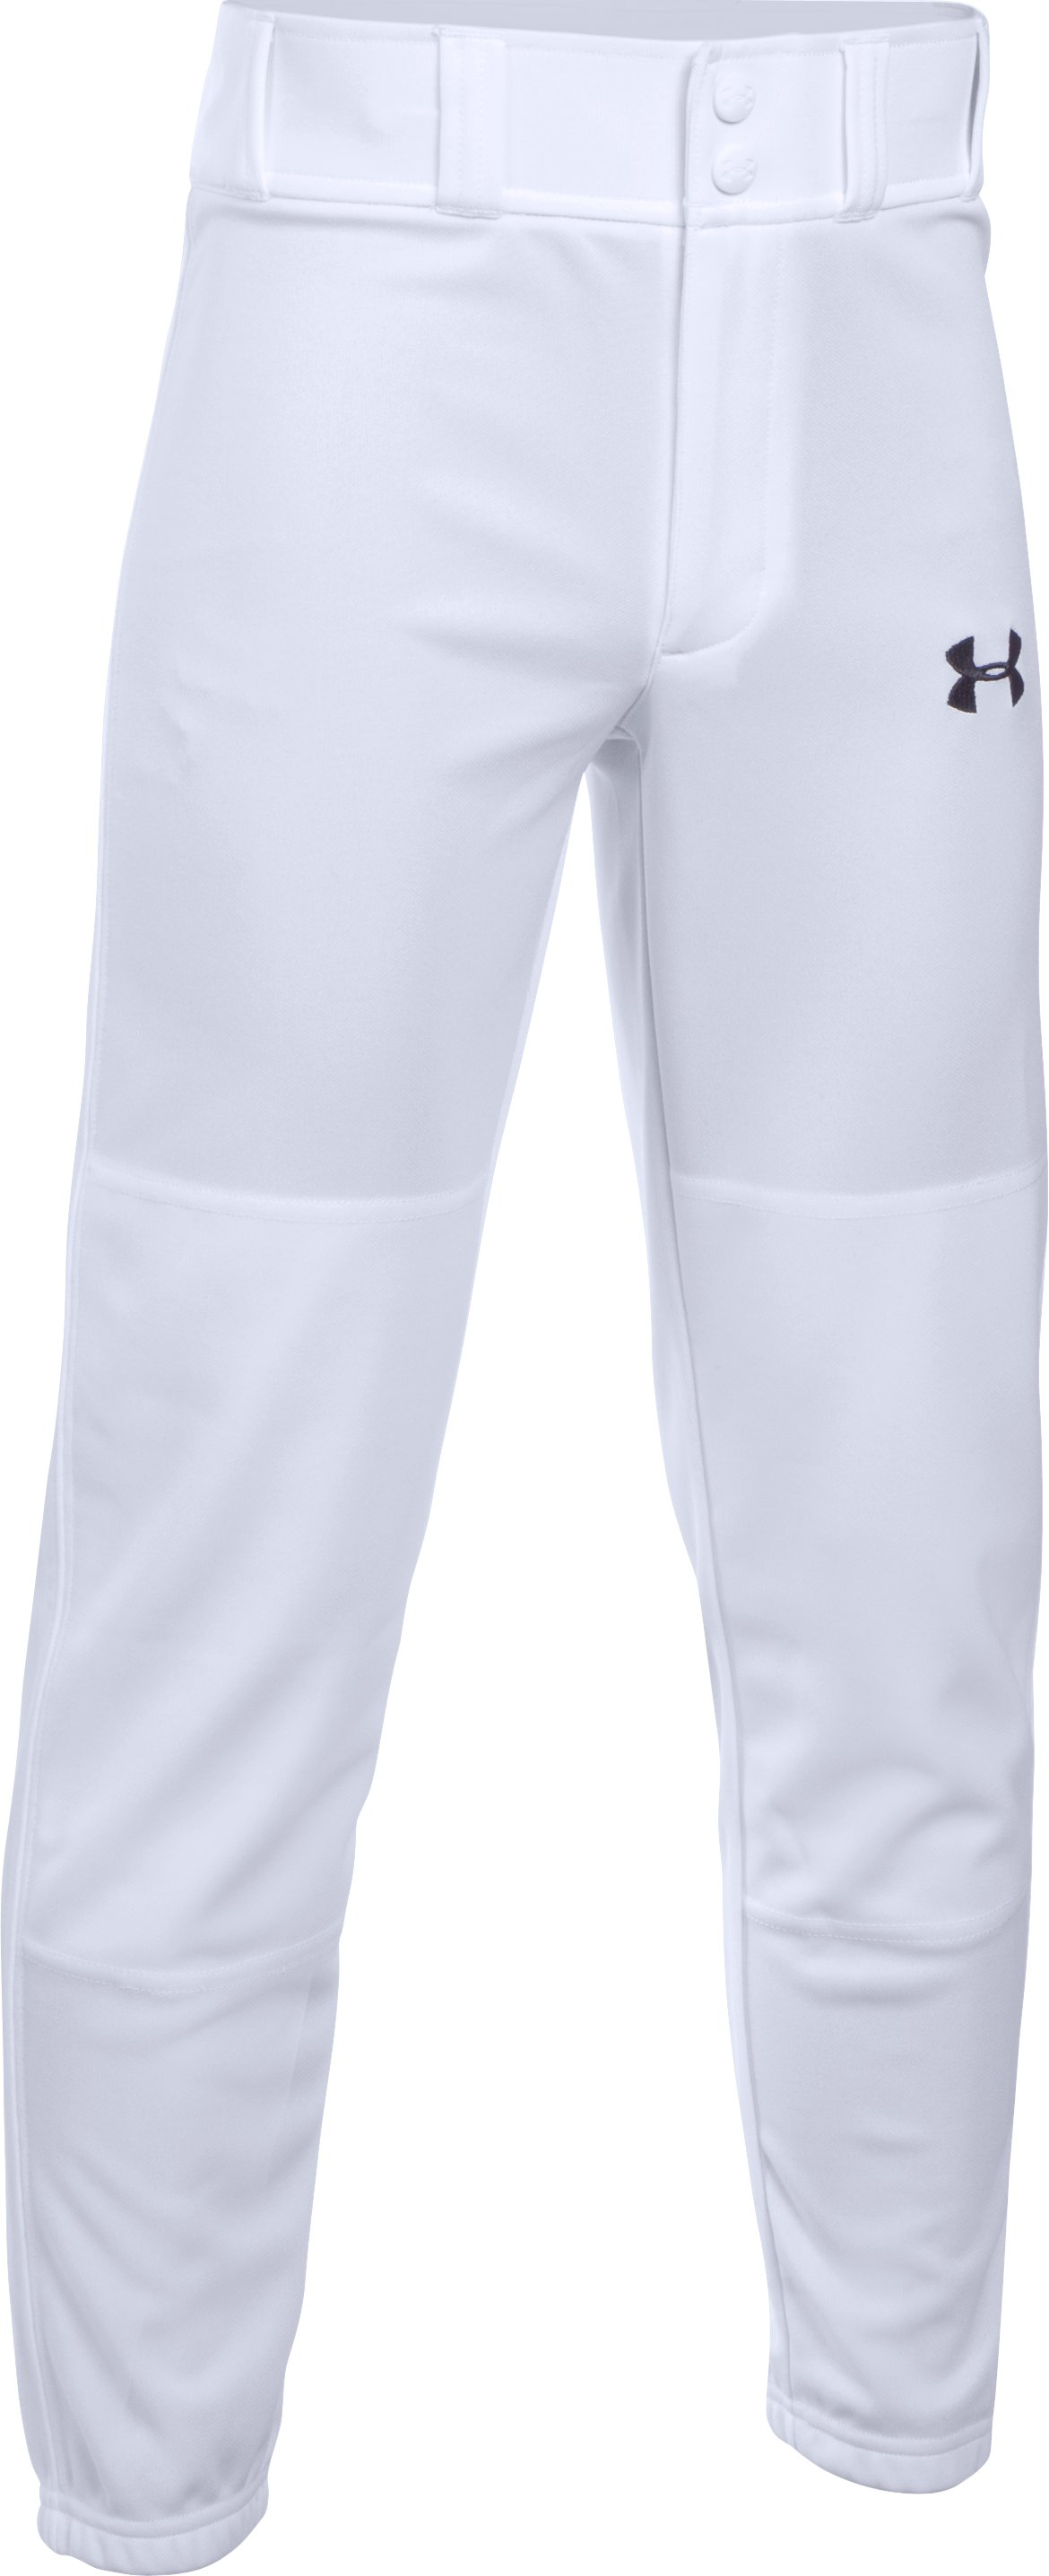 Boys' UA Clean Up Cuffed Baseball Pants, White